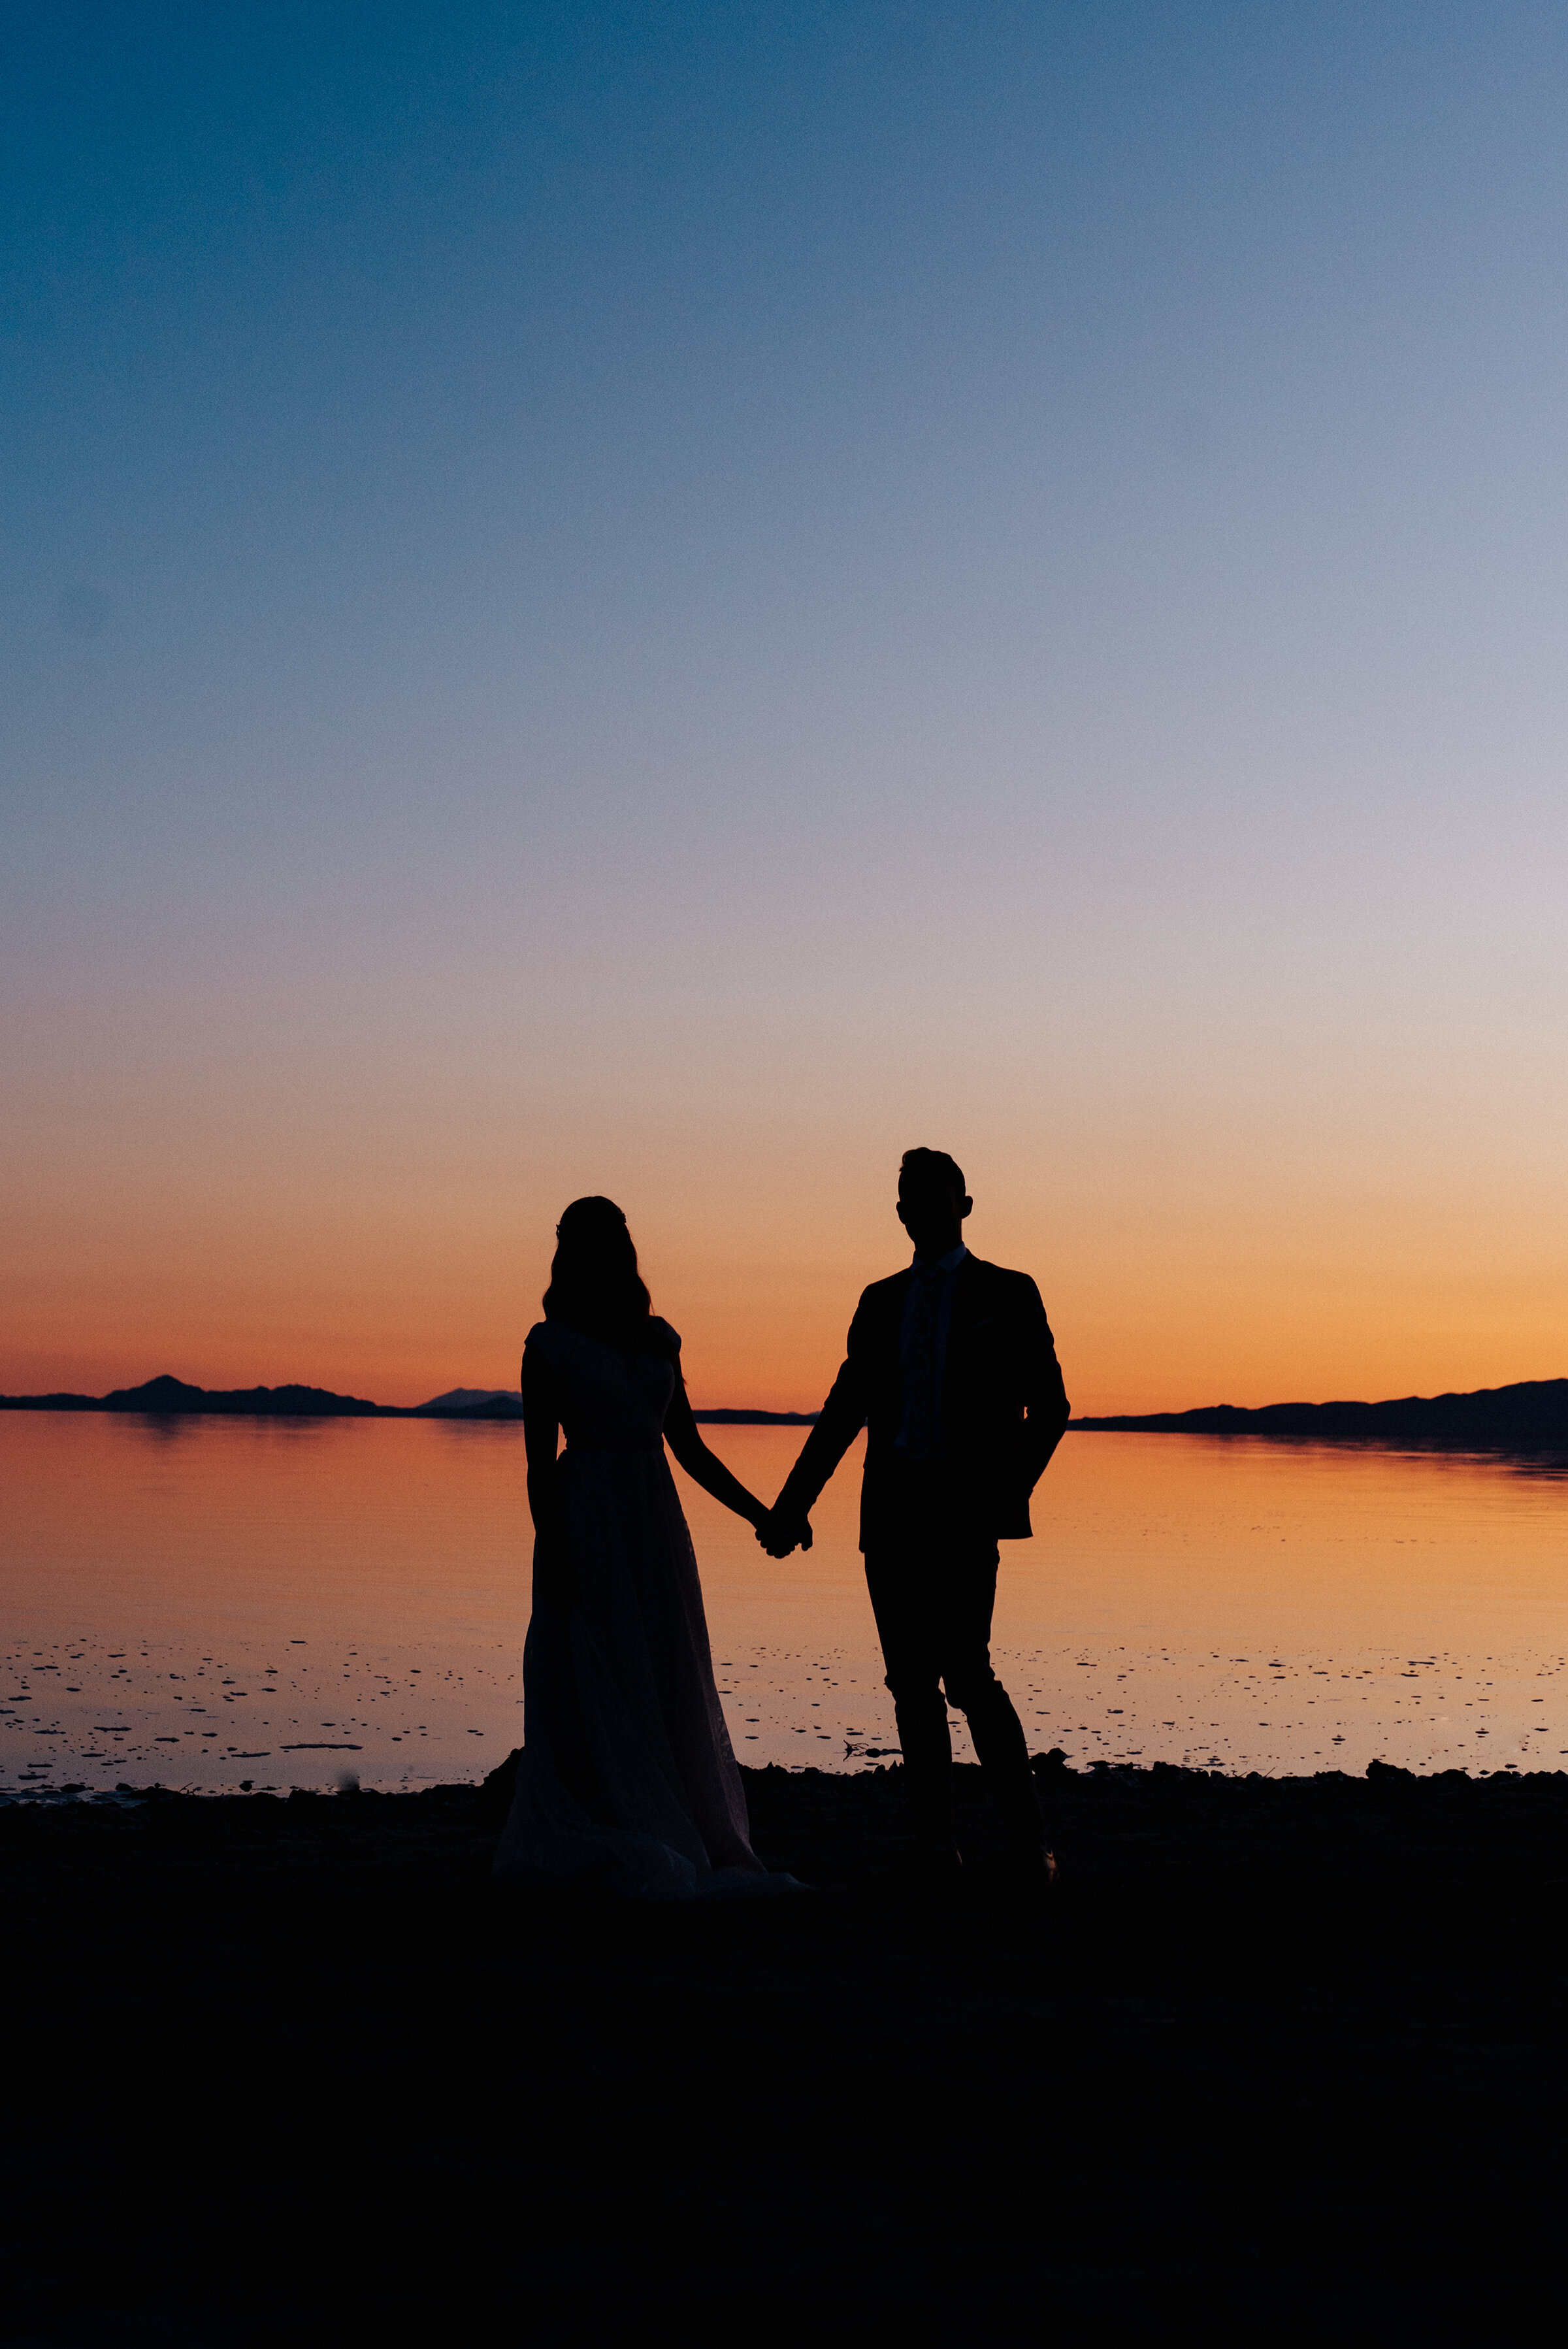 Silhouettes of the bride and groom at sunset during their formal wedding photography session at the Great Salt Lake Spiral Jetty. #spiraljetty #GreatSaltLake #formalsession #SaltFlats #sunsetphotosession #NorthernUtah #weddingphotographer #formalphotographer #brideandgroom #outdoorformals #weddingformalphotography